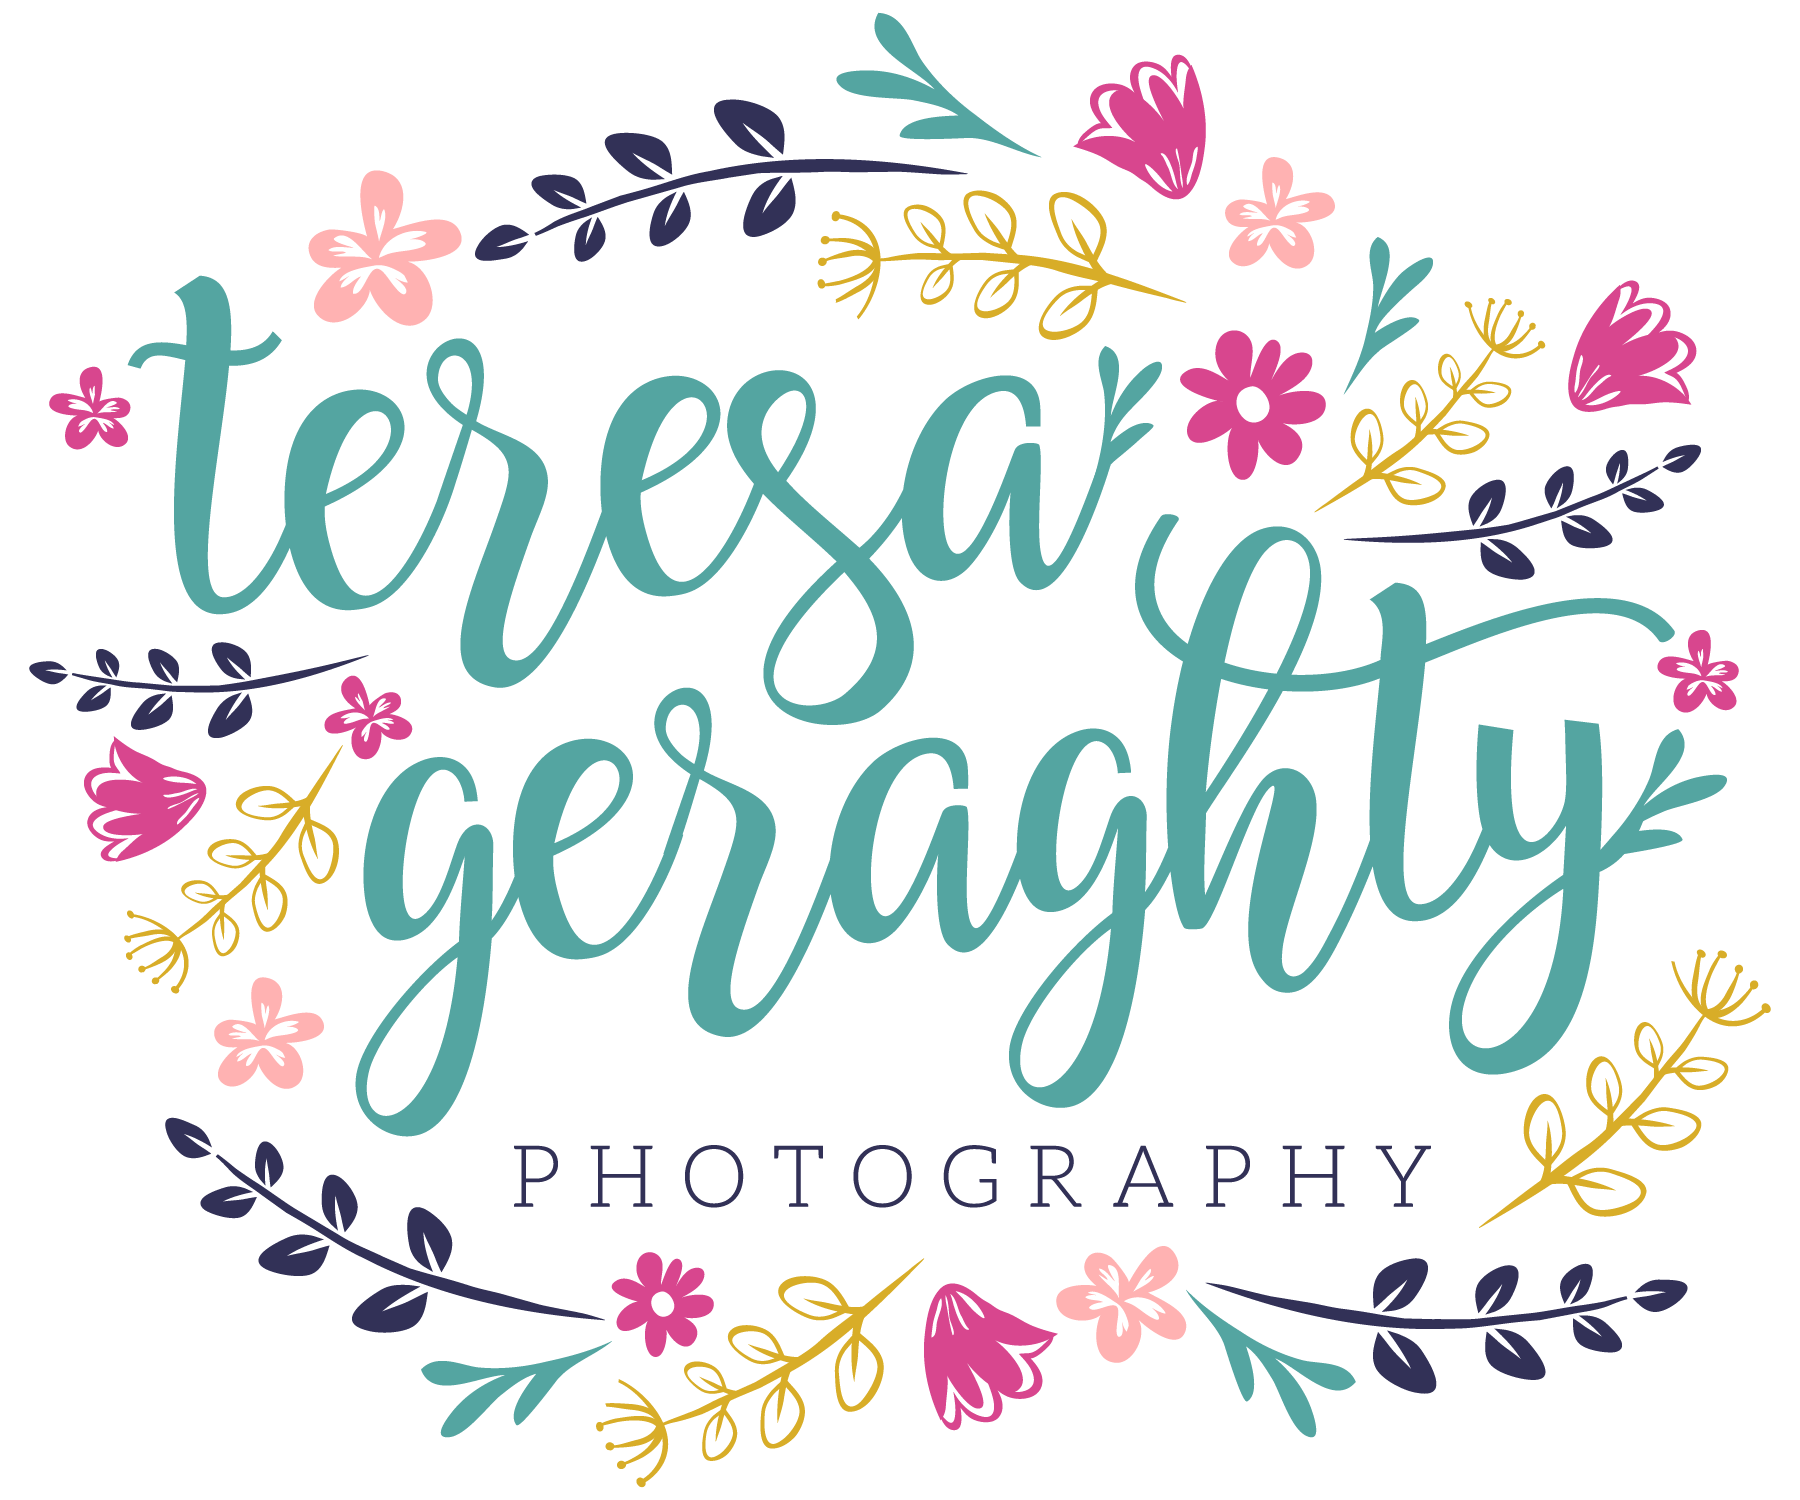 Teresa Geraghty Photography | Newborn Photography Long Island